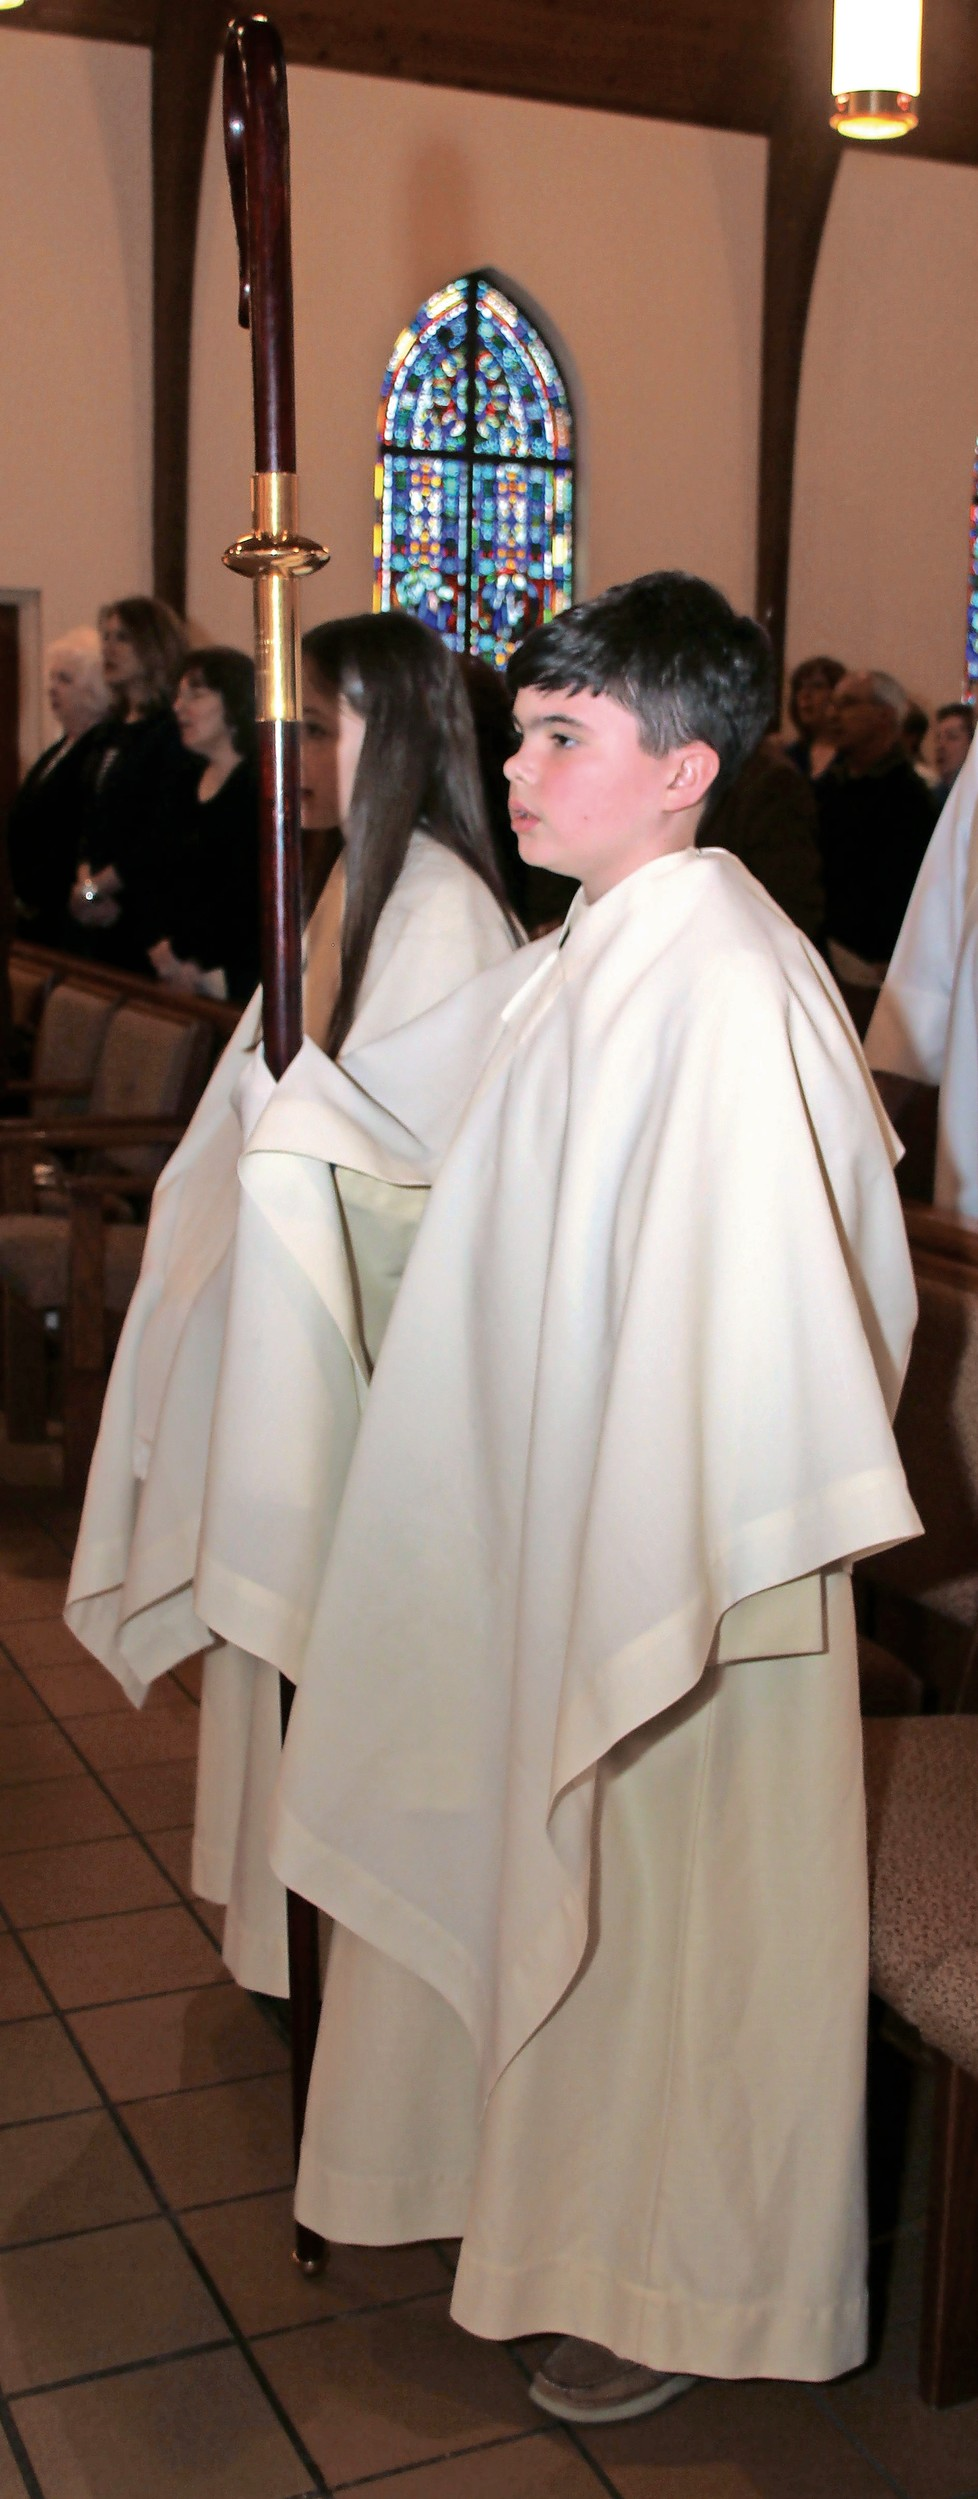 Altar server Tommy Ward held the crosier, the pastoral staff symbolizing the bishop's role as a shepherd.